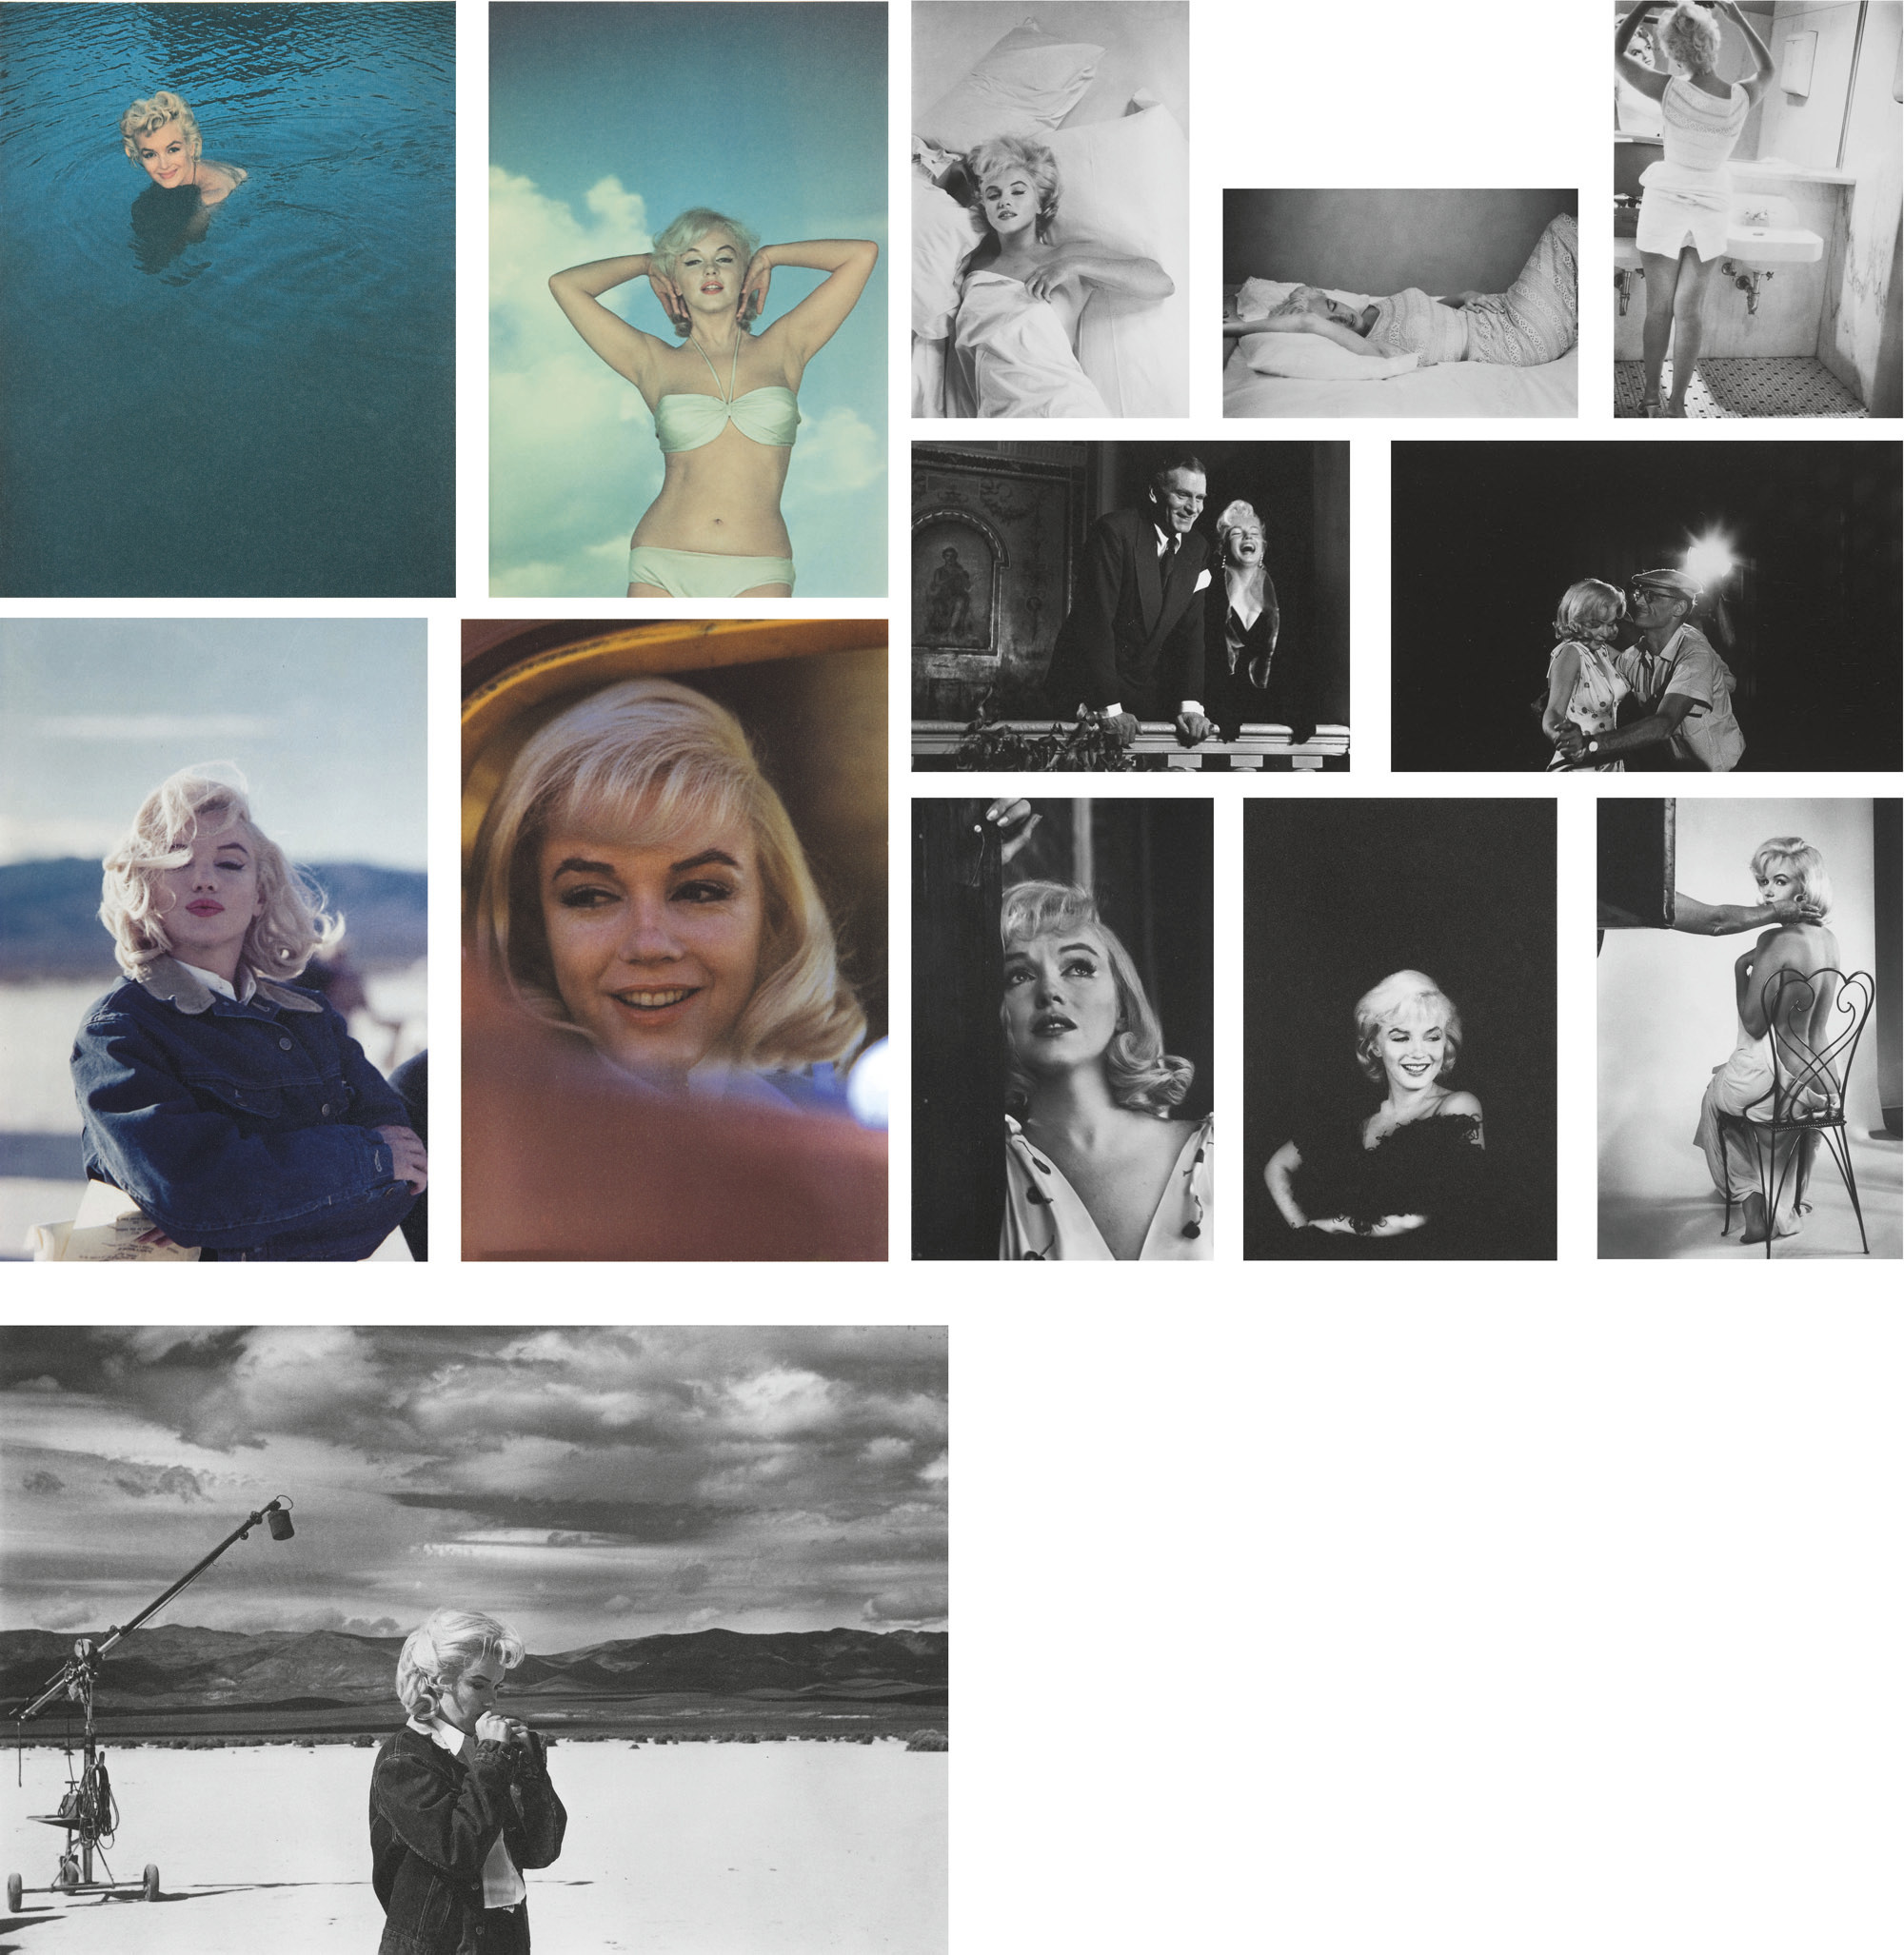 Eve Arnolds 1955 Photo Of Marilyn >> Eve Arnold B 1913 Marilyn 1955 1960 Photographs Christie S